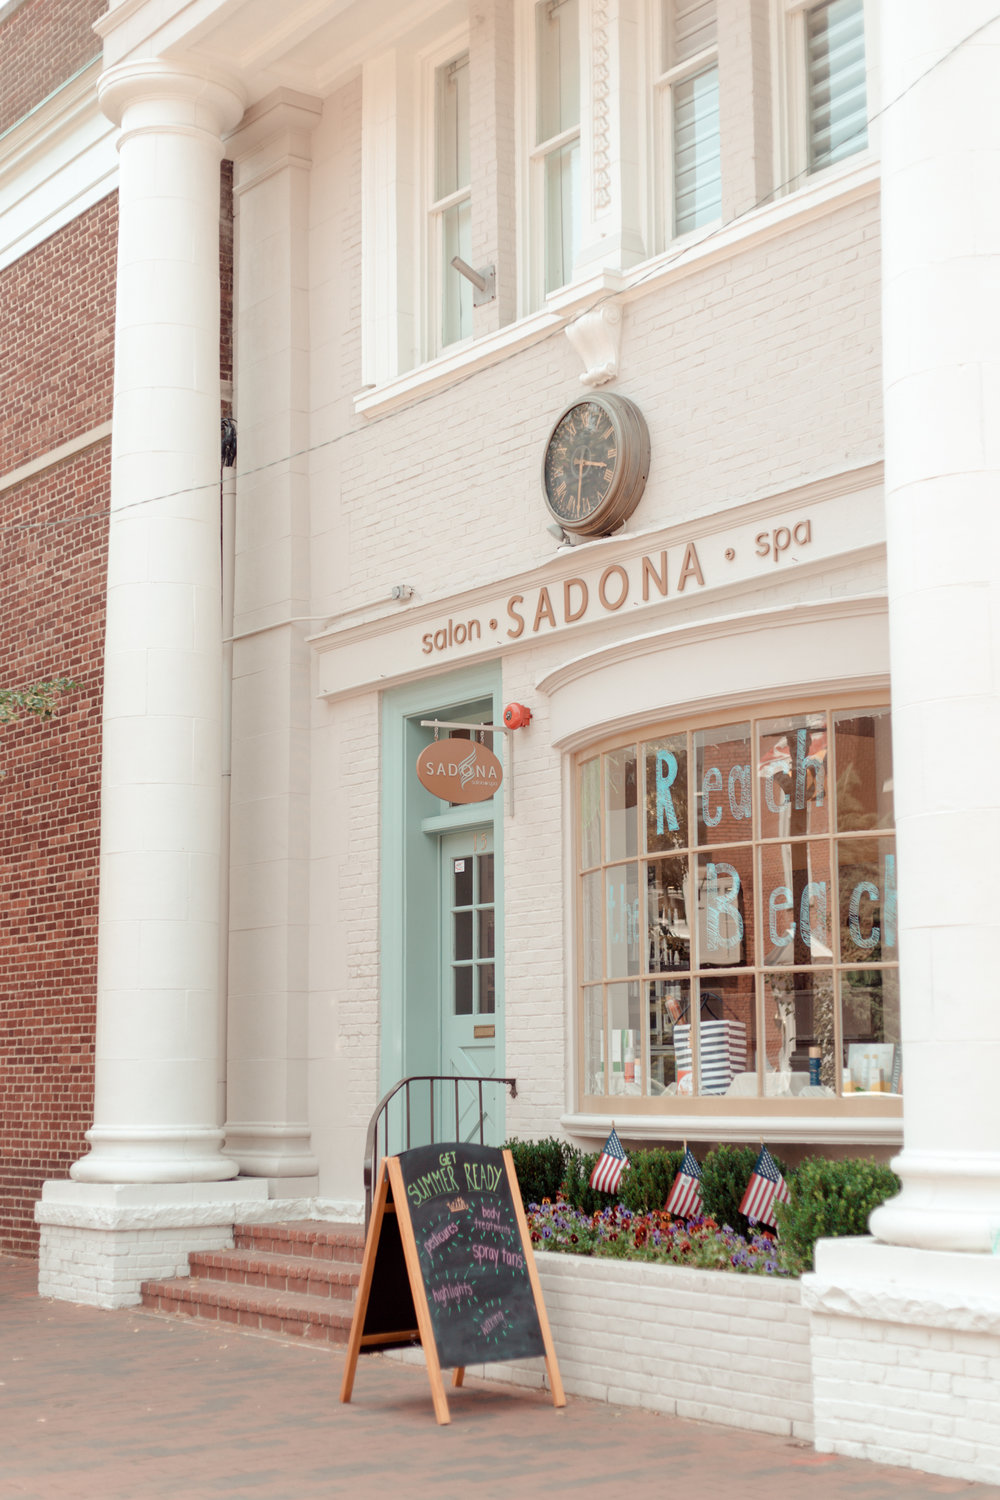 Sadona Salon & Spa